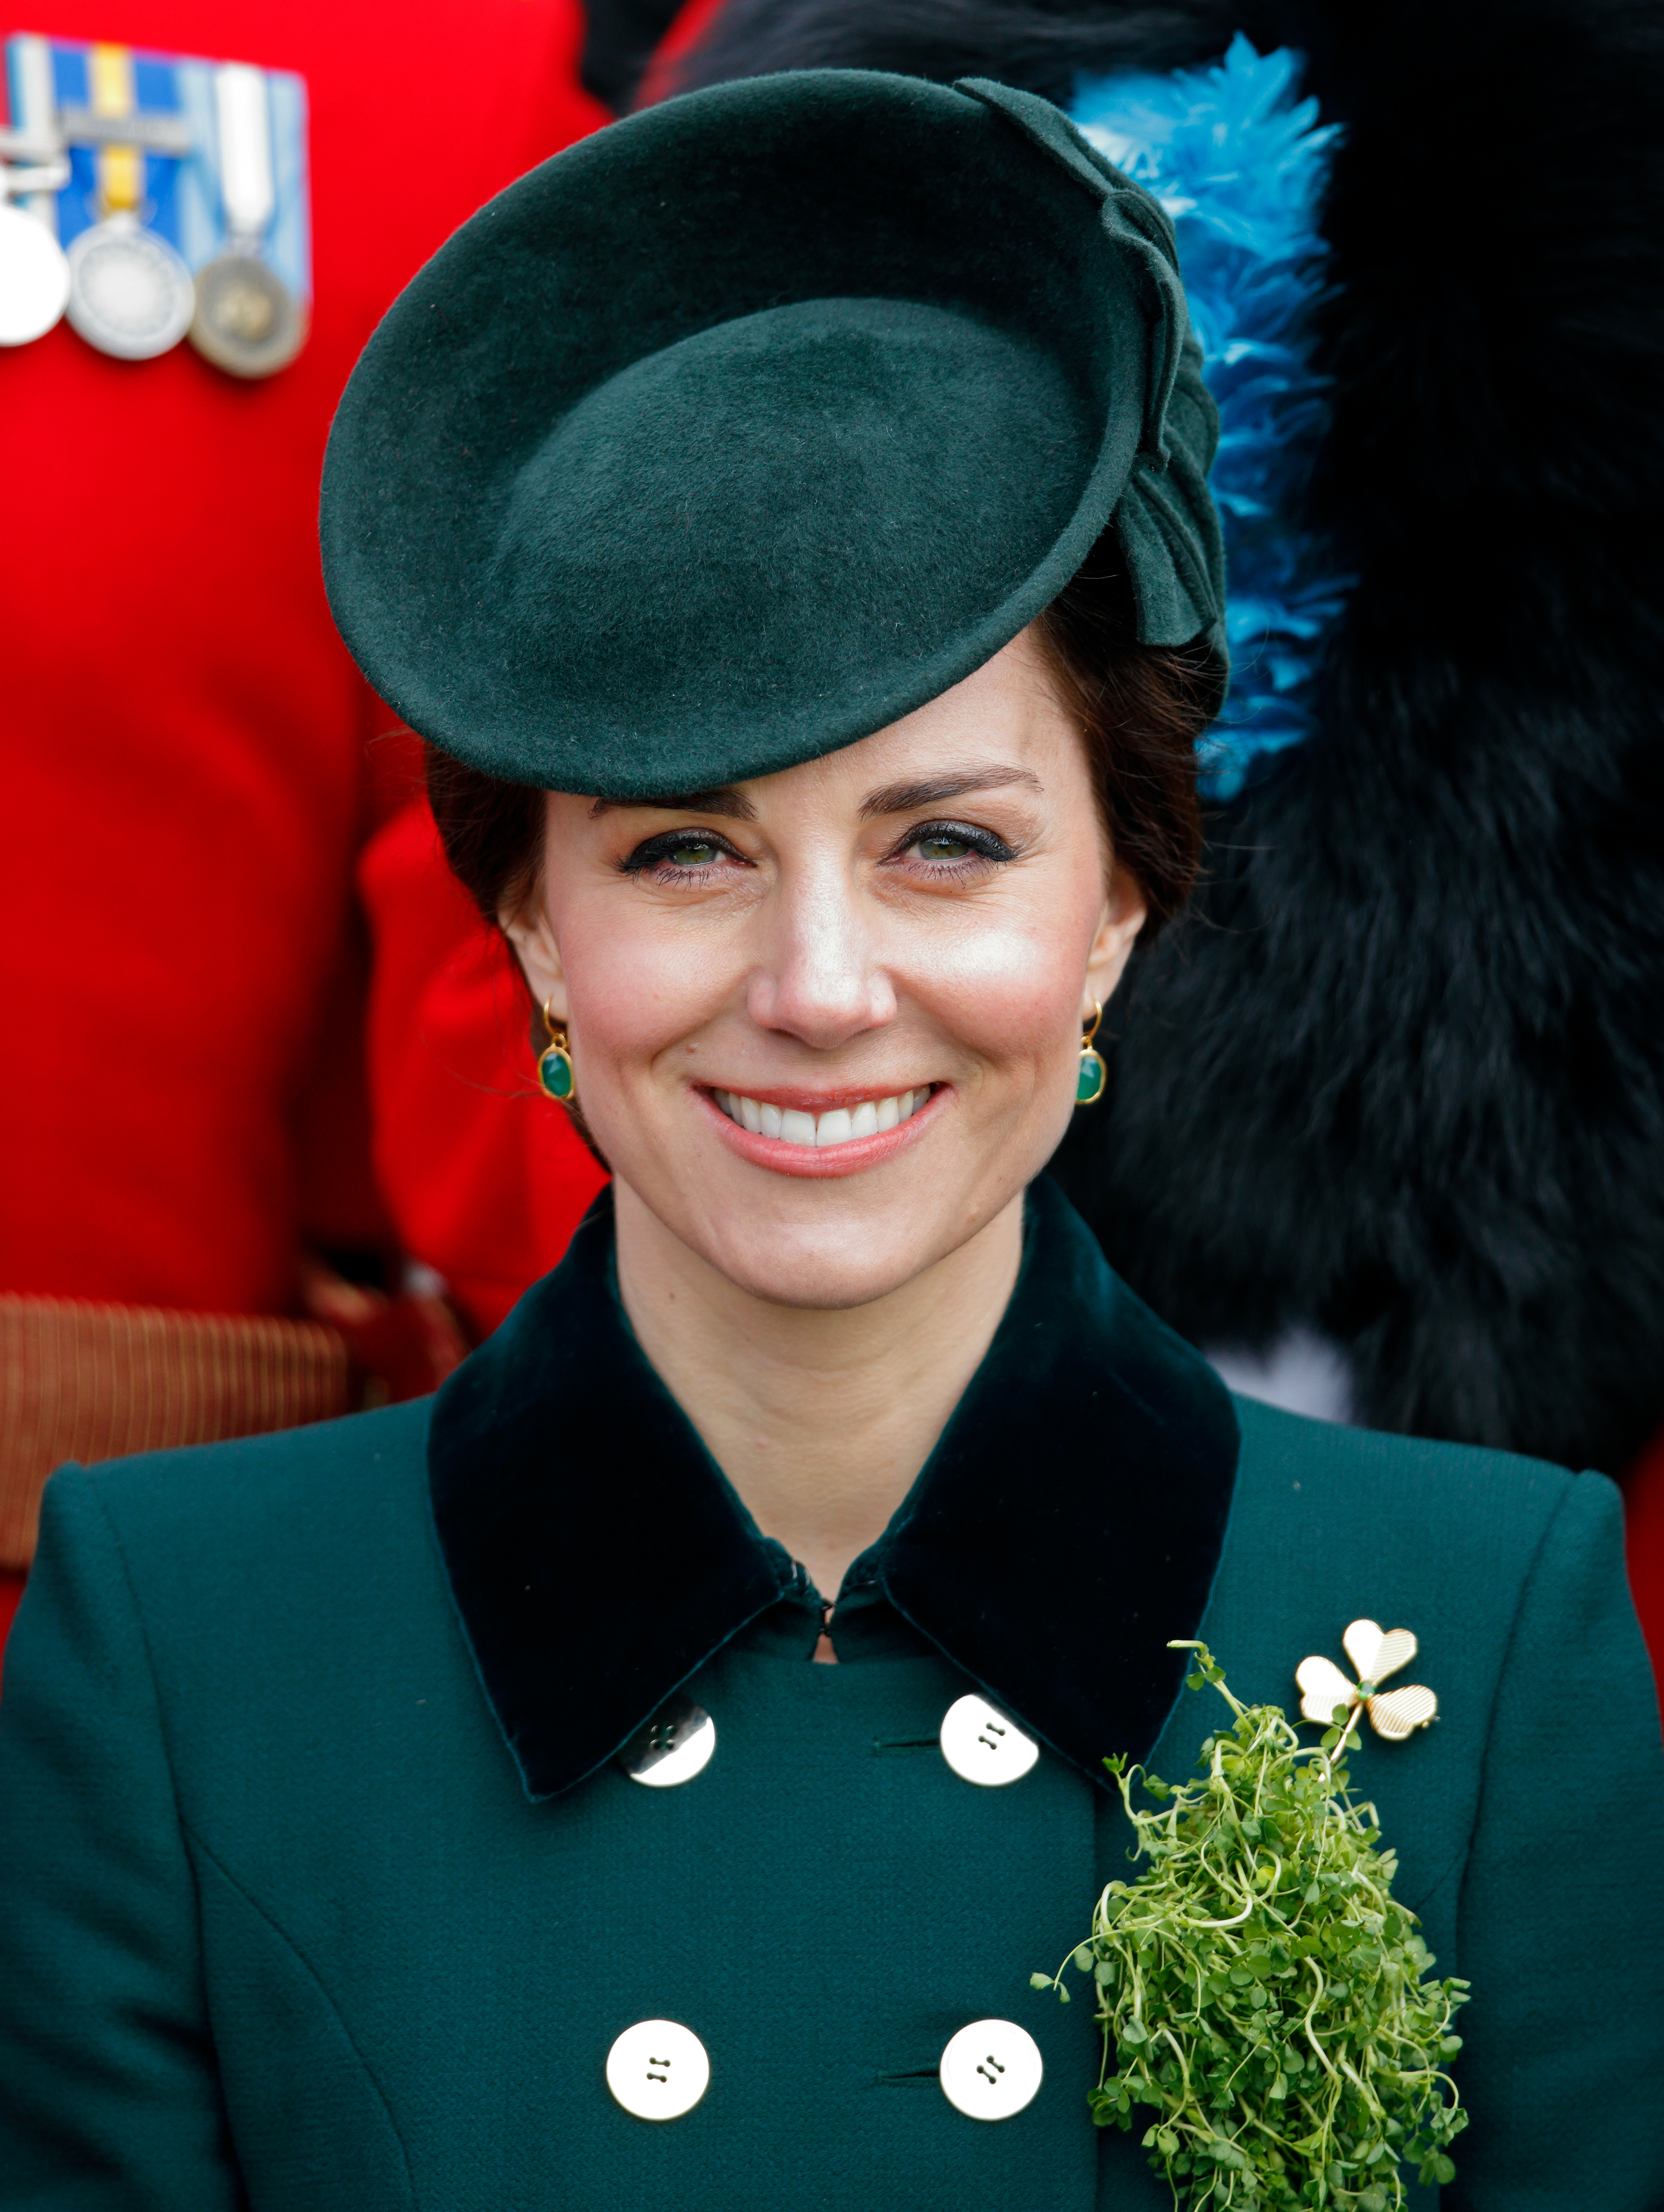 a24c860aec74 Kate Middleton hats  the Duchess of Cambridge s 21 best looks ...